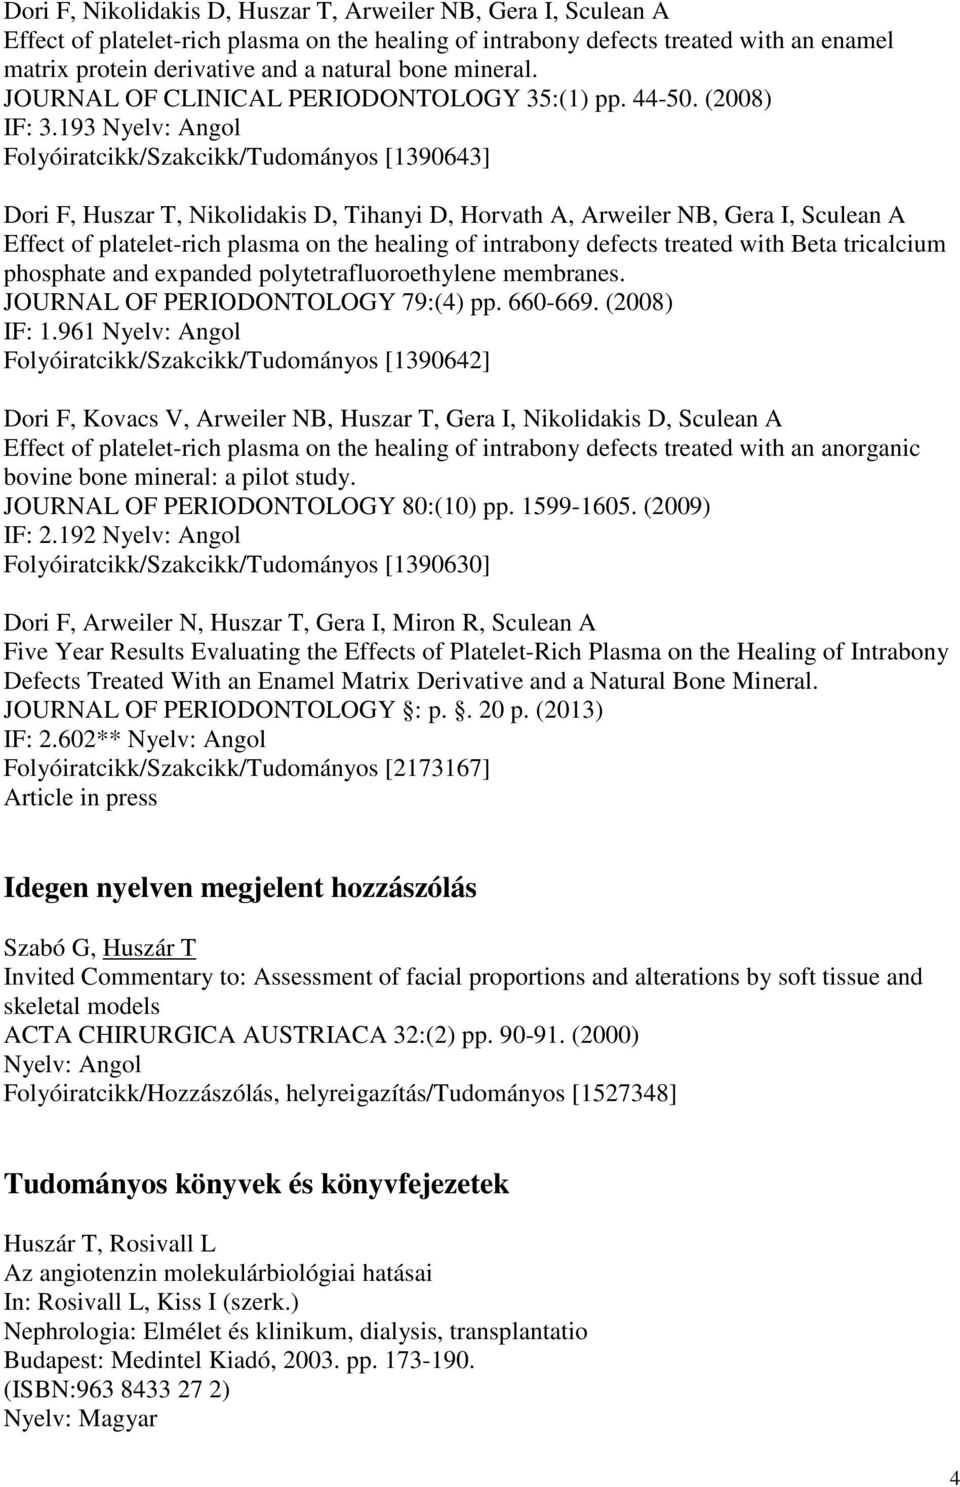 193 Nyelv: Angol Folyóiratcikk/Szakcikk/Tudományos [1390643] Dori F, Huszar T, Nikolidakis D, Tihanyi D, Horvath A, Arweiler NB, Gera I, Sculean A Effect of platelet-rich plasma on the healing of